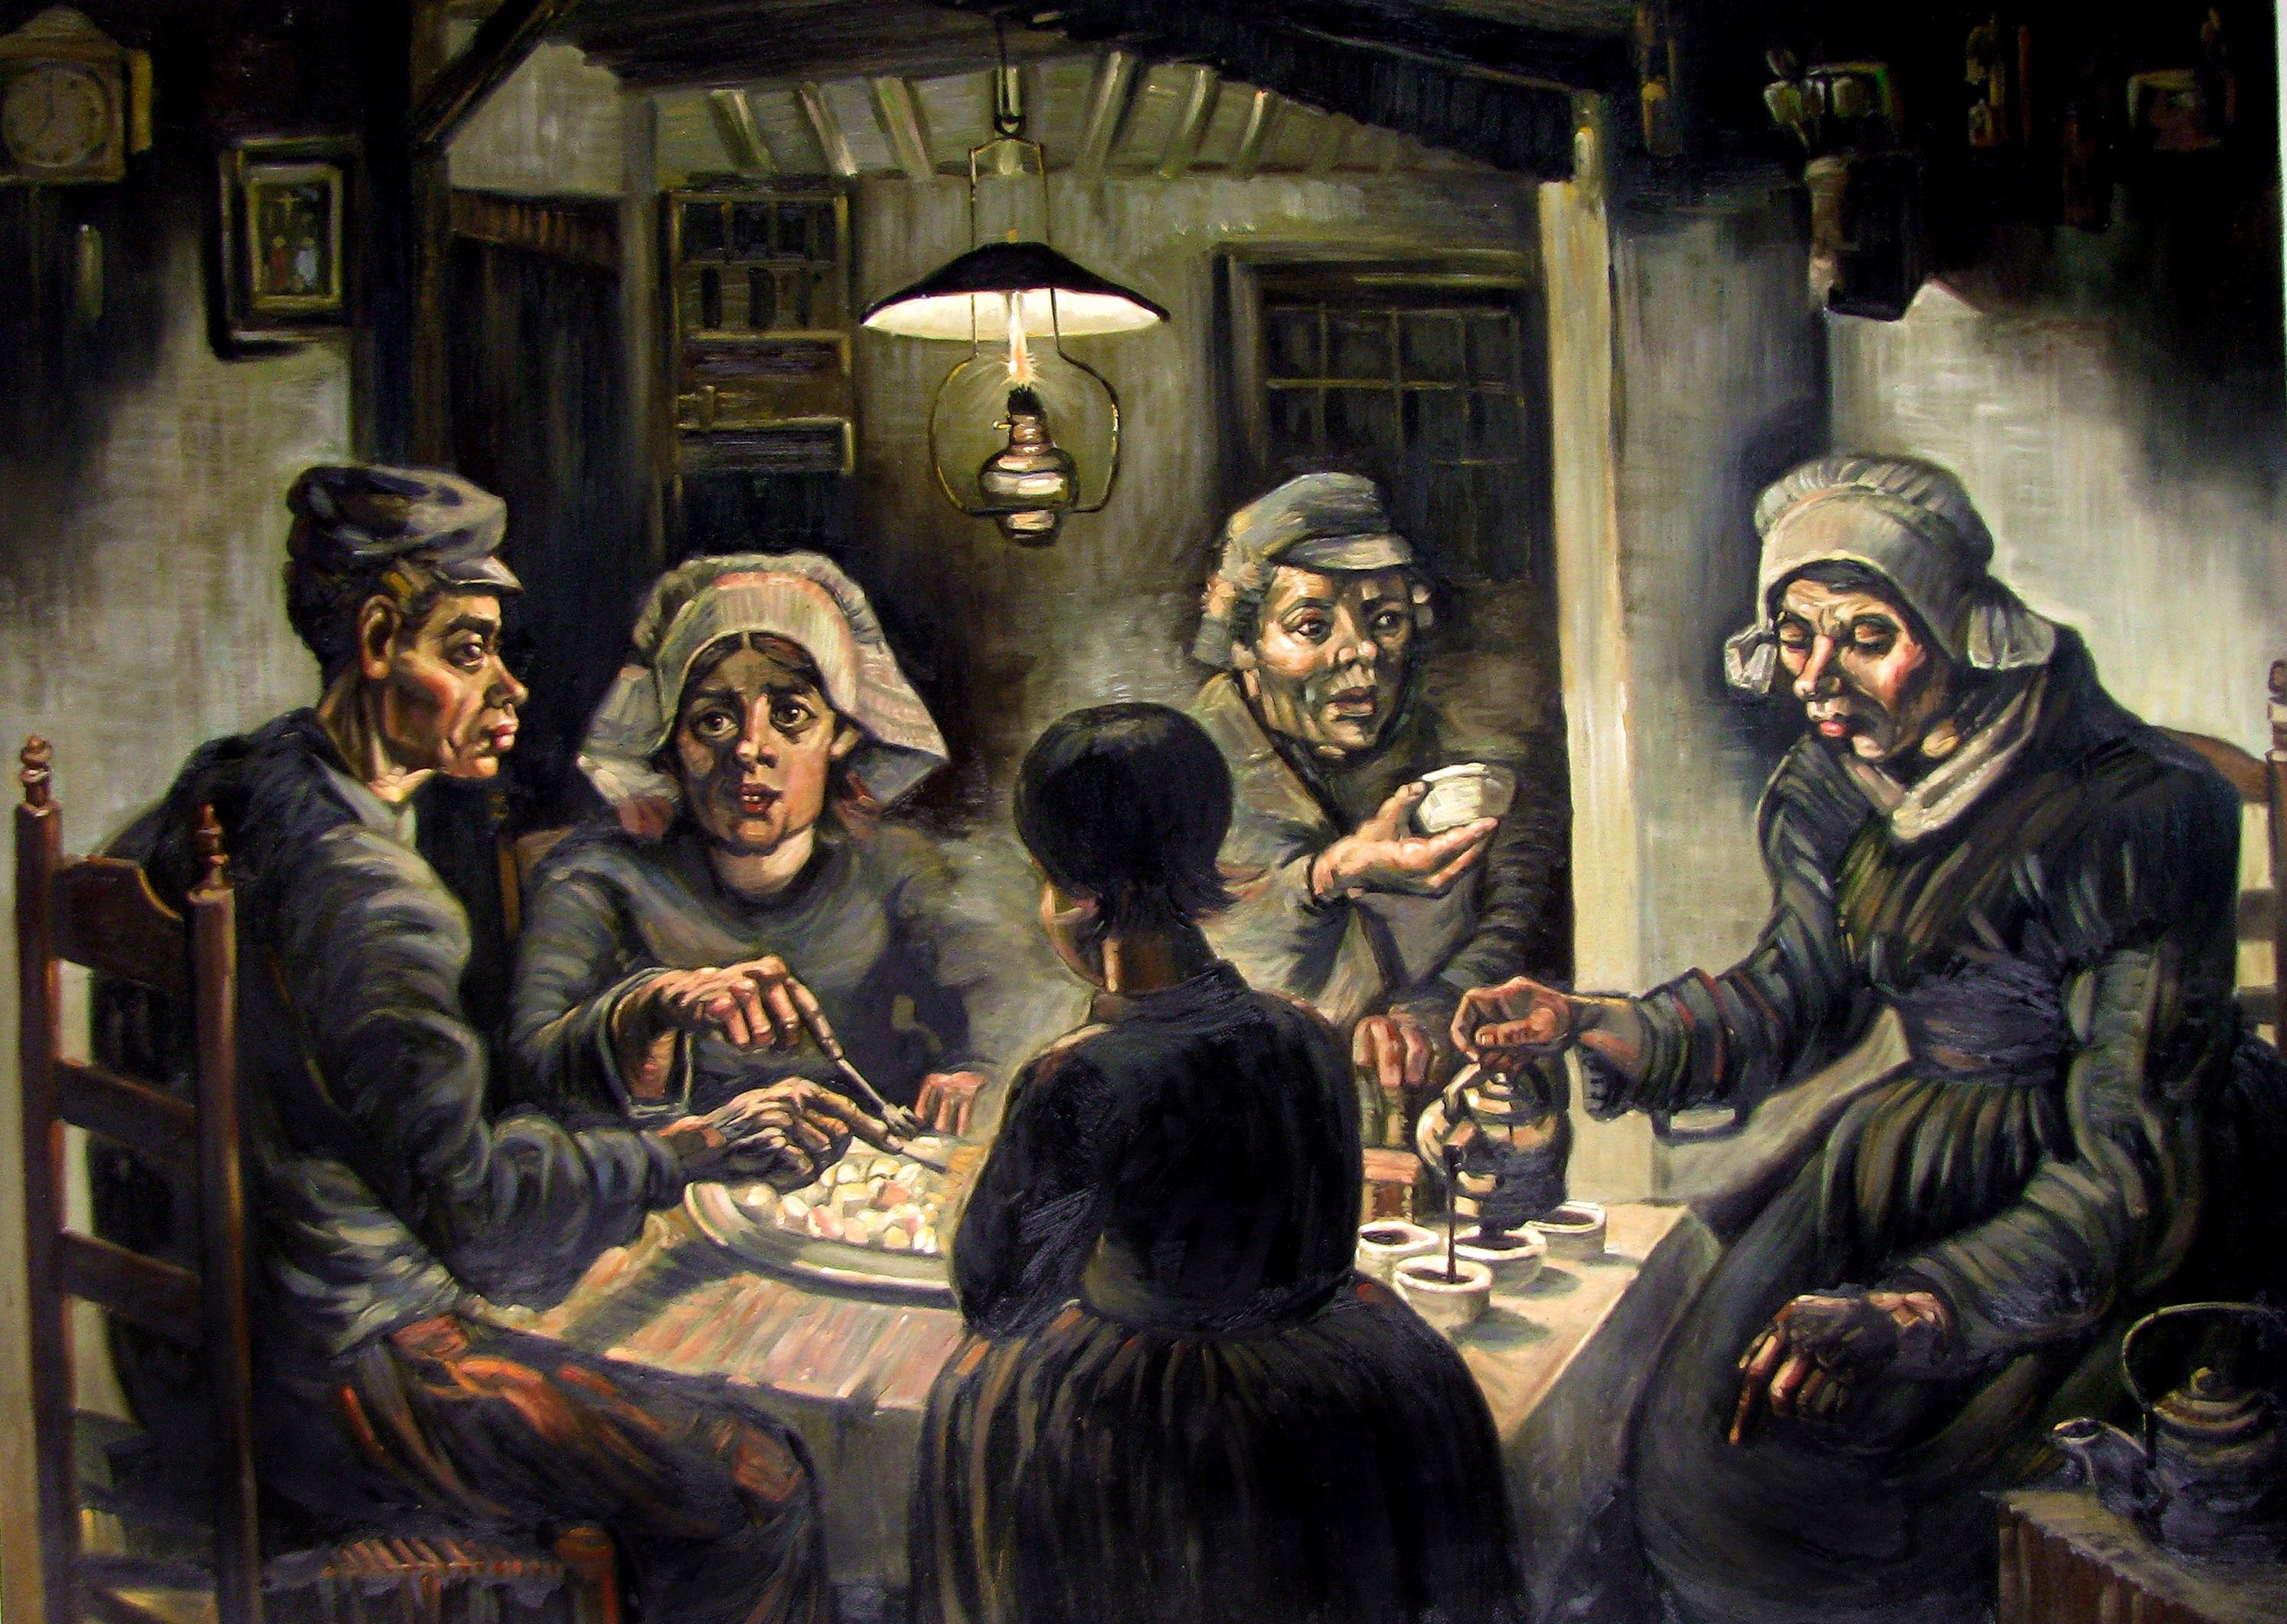 analysis of the potato eaters by vincent van gogh essay Art & critique articles on artists from various periods, including contemporary daily/frequent painters vincent van gogh's potato eaters.